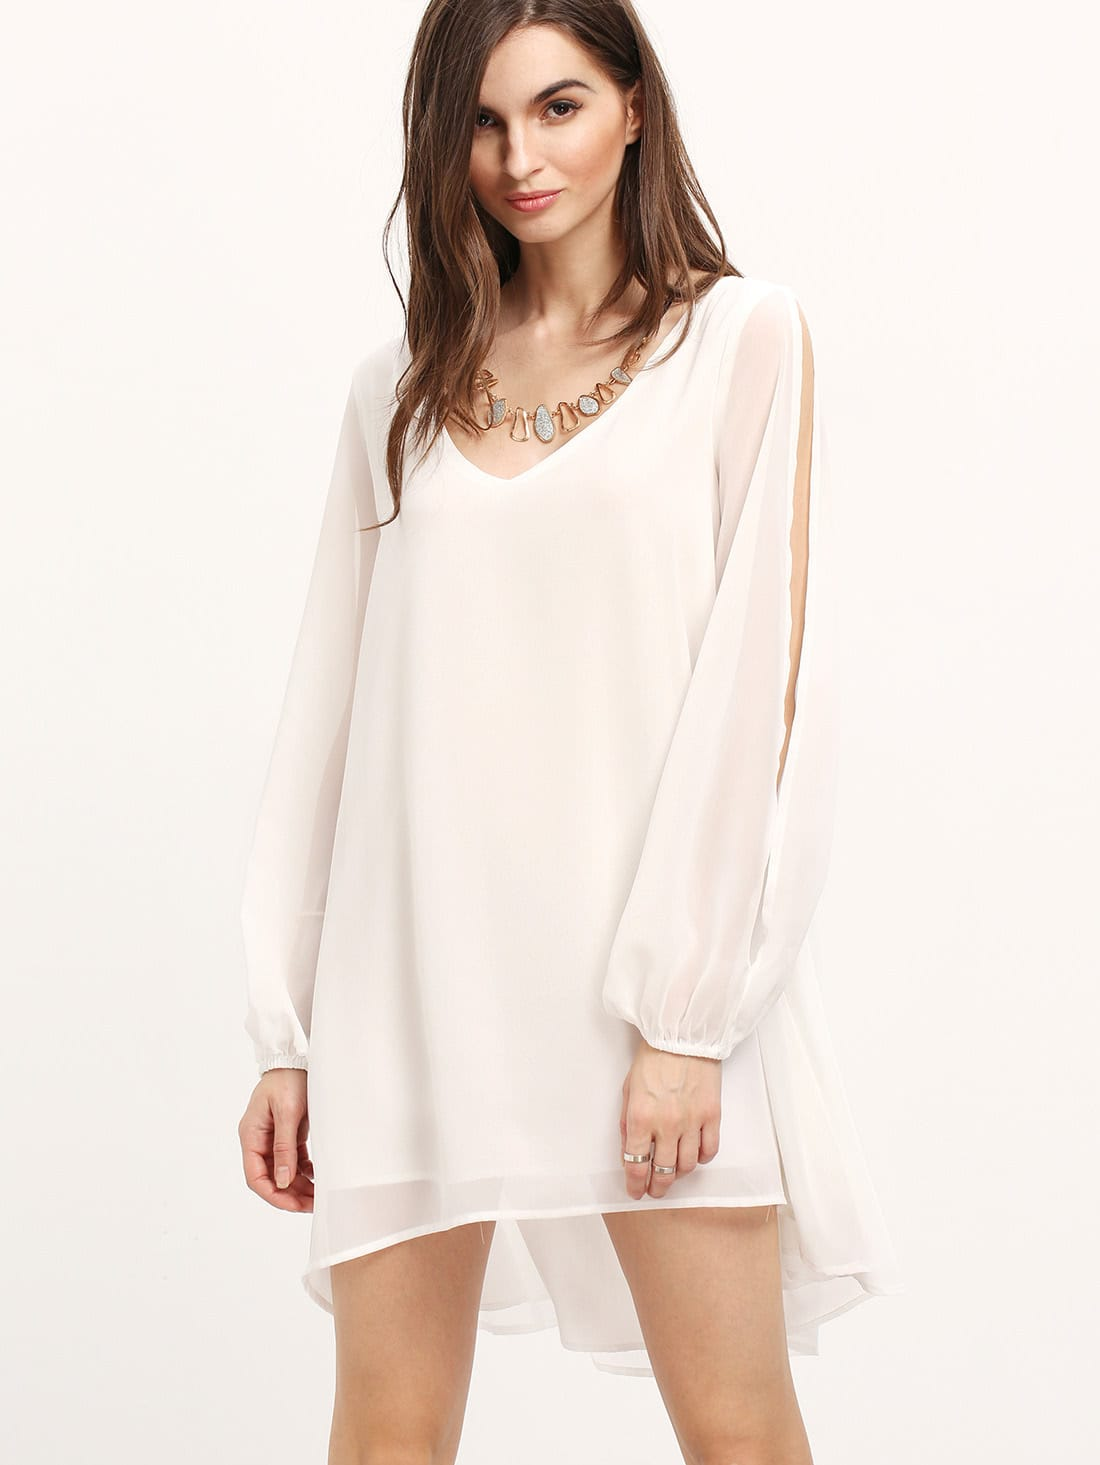 V Neck Split Sleeve Chiffon White Dress